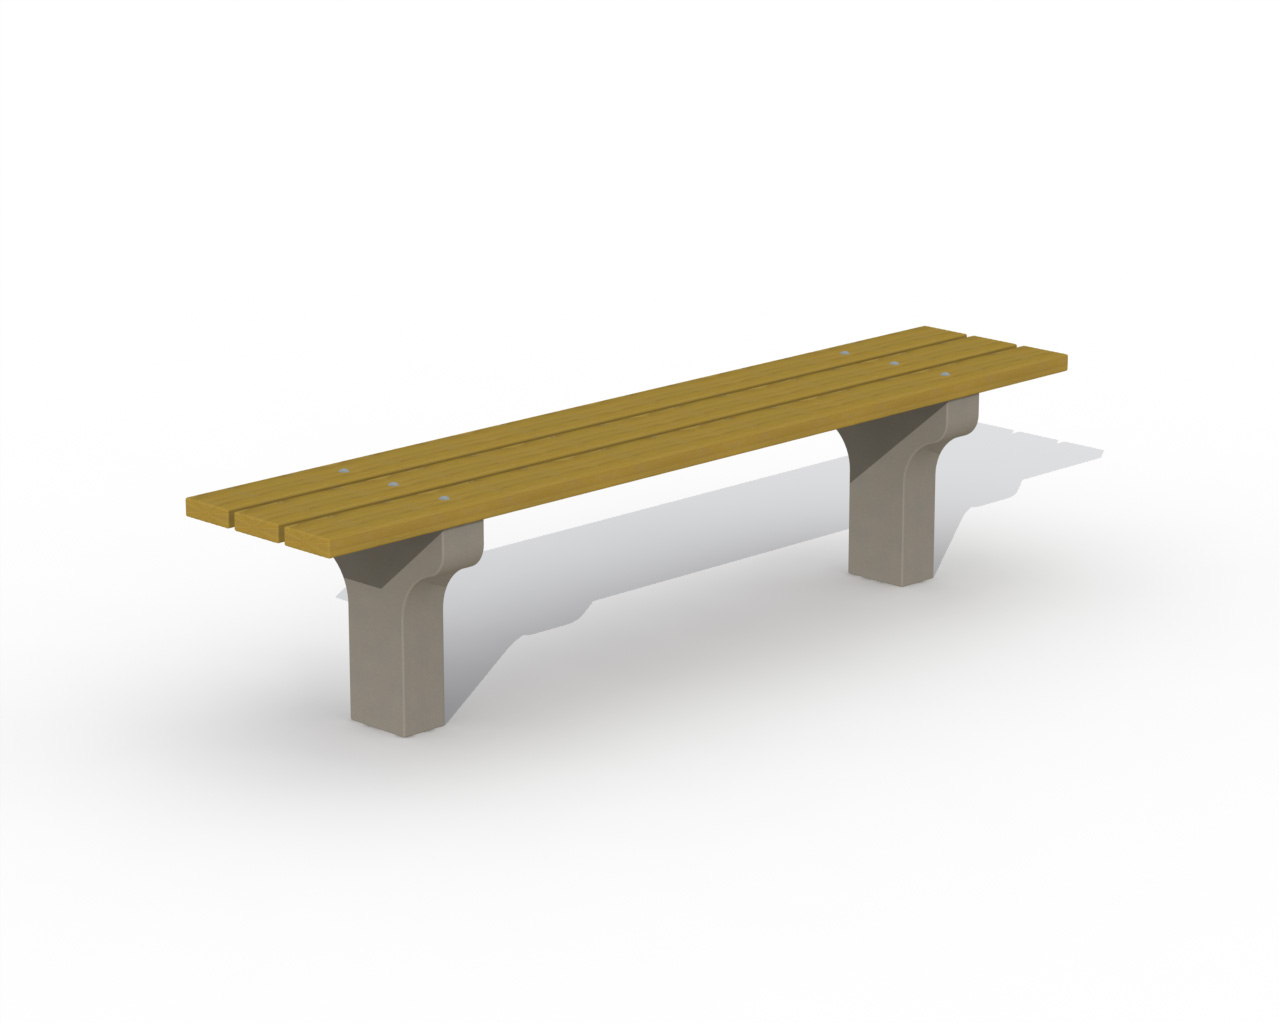 Surprising Concrete Benches With Wood Slats Without Back Rest Classic Beatyapartments Chair Design Images Beatyapartmentscom